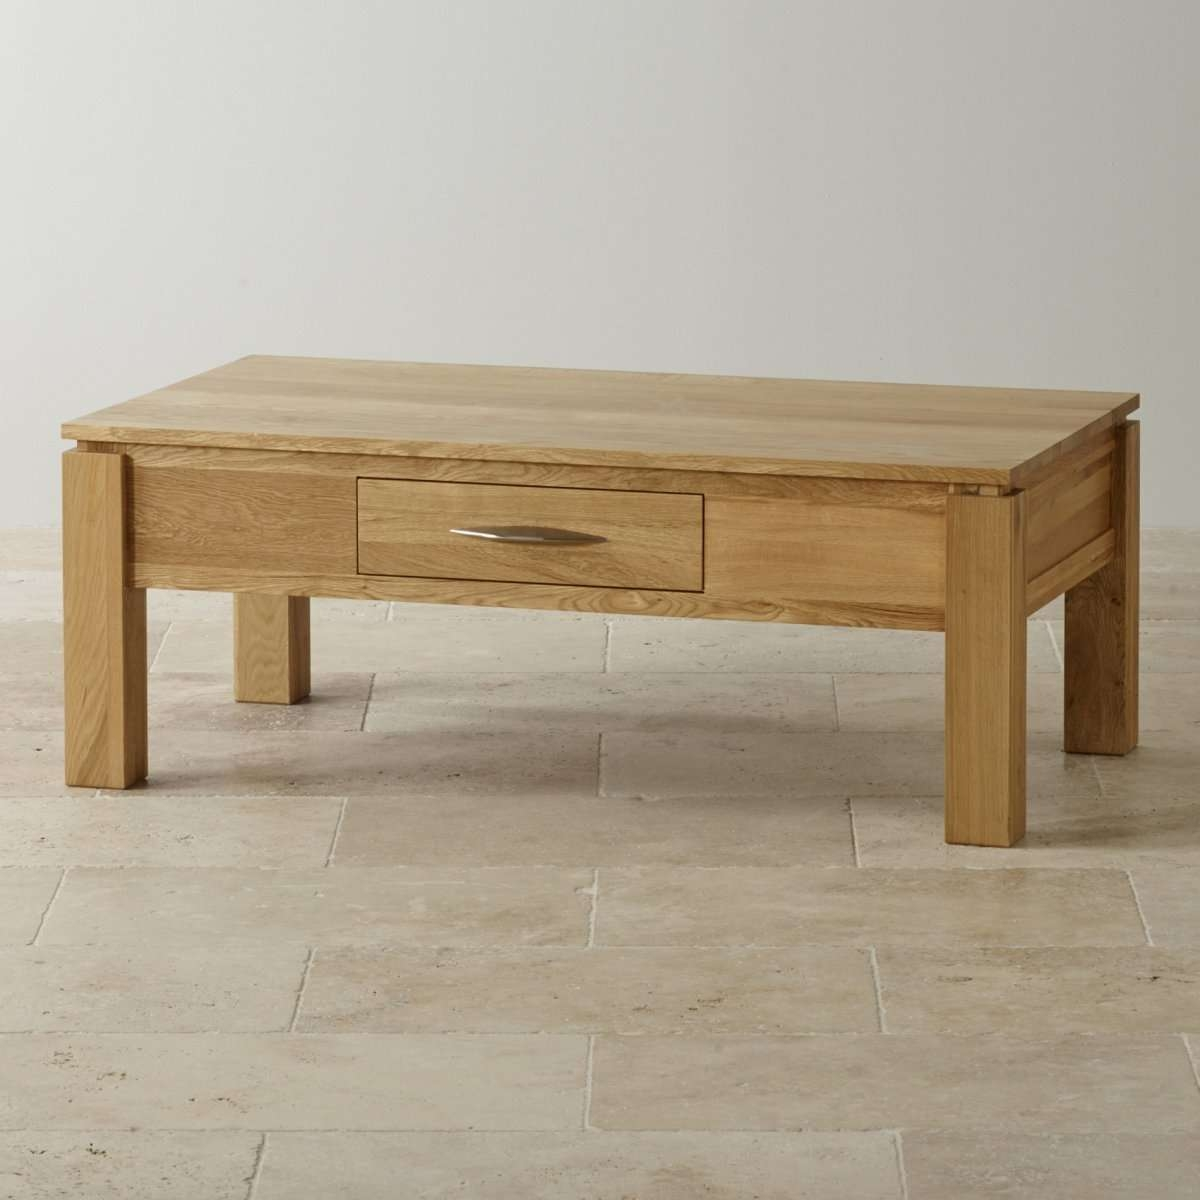 Most Current Solid Oak Coffee Table With Storage For Galway Large Coffee Table In Solid Oak (View 9 of 20)